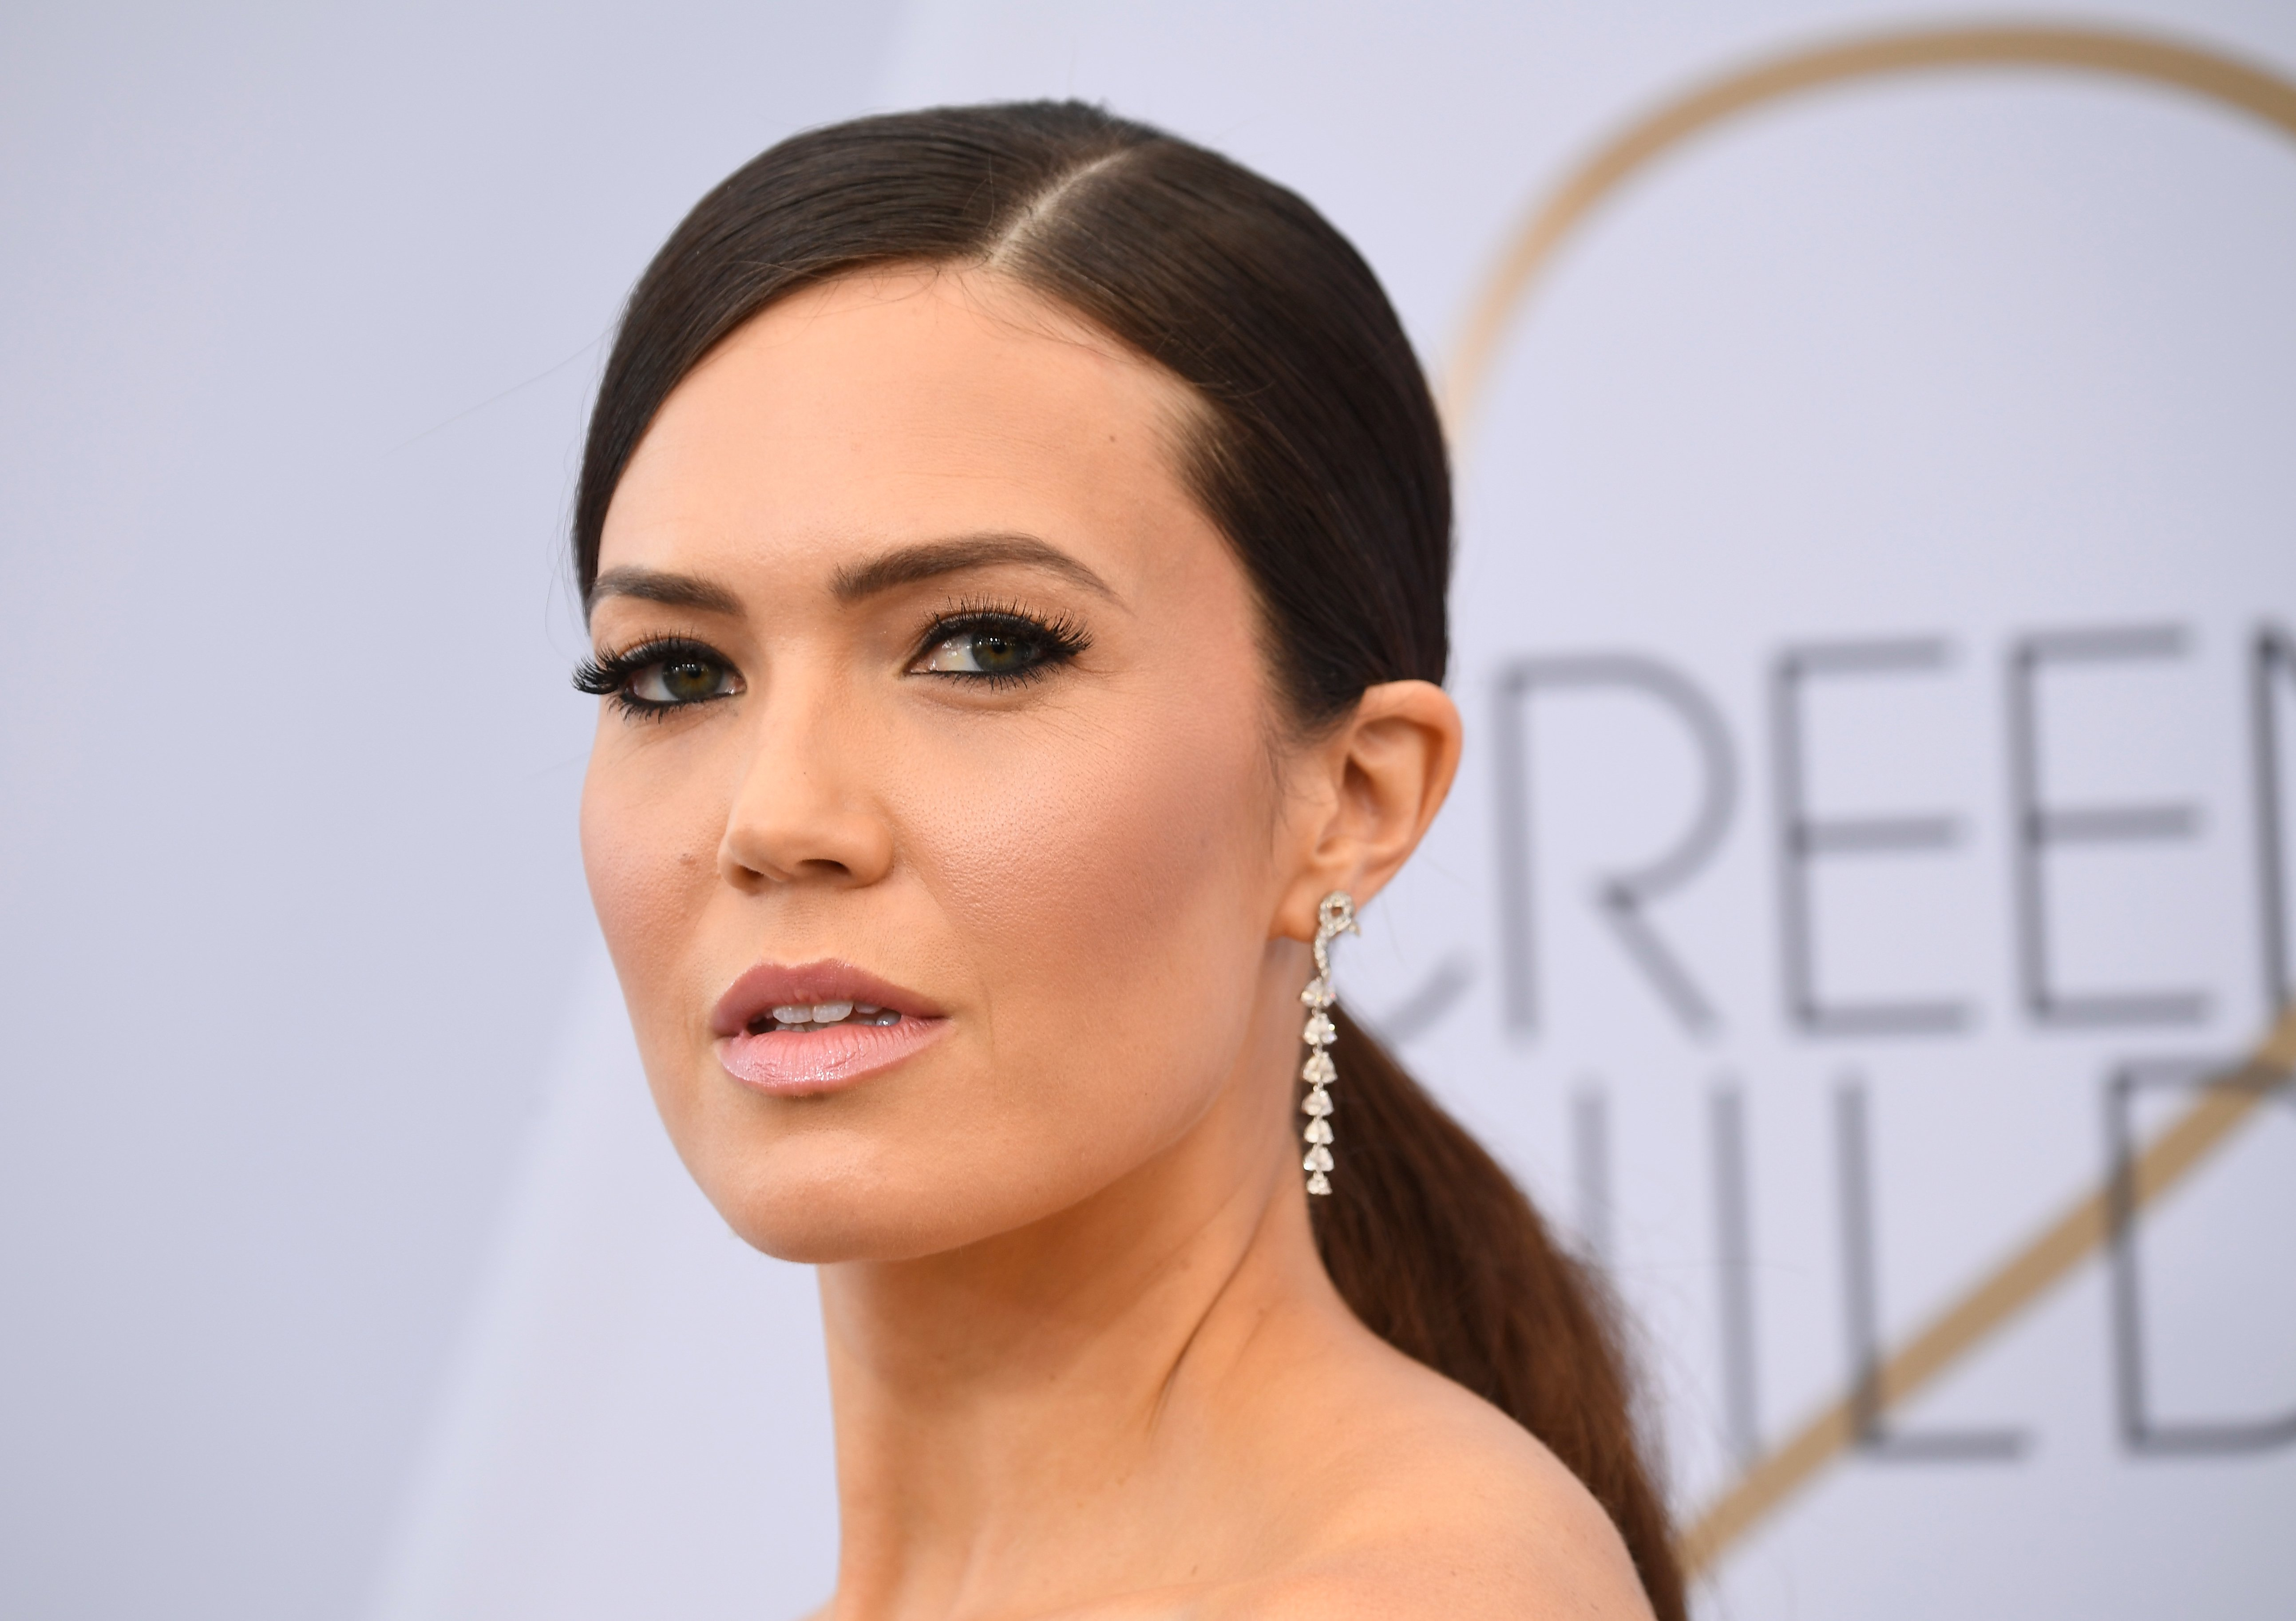 Mandy Moore attends the 25th Annual Screen Actors Guild Awards at The Shrine Auditorium on January 27, 2019 in Los Angeles, California | Photo: GettyImages